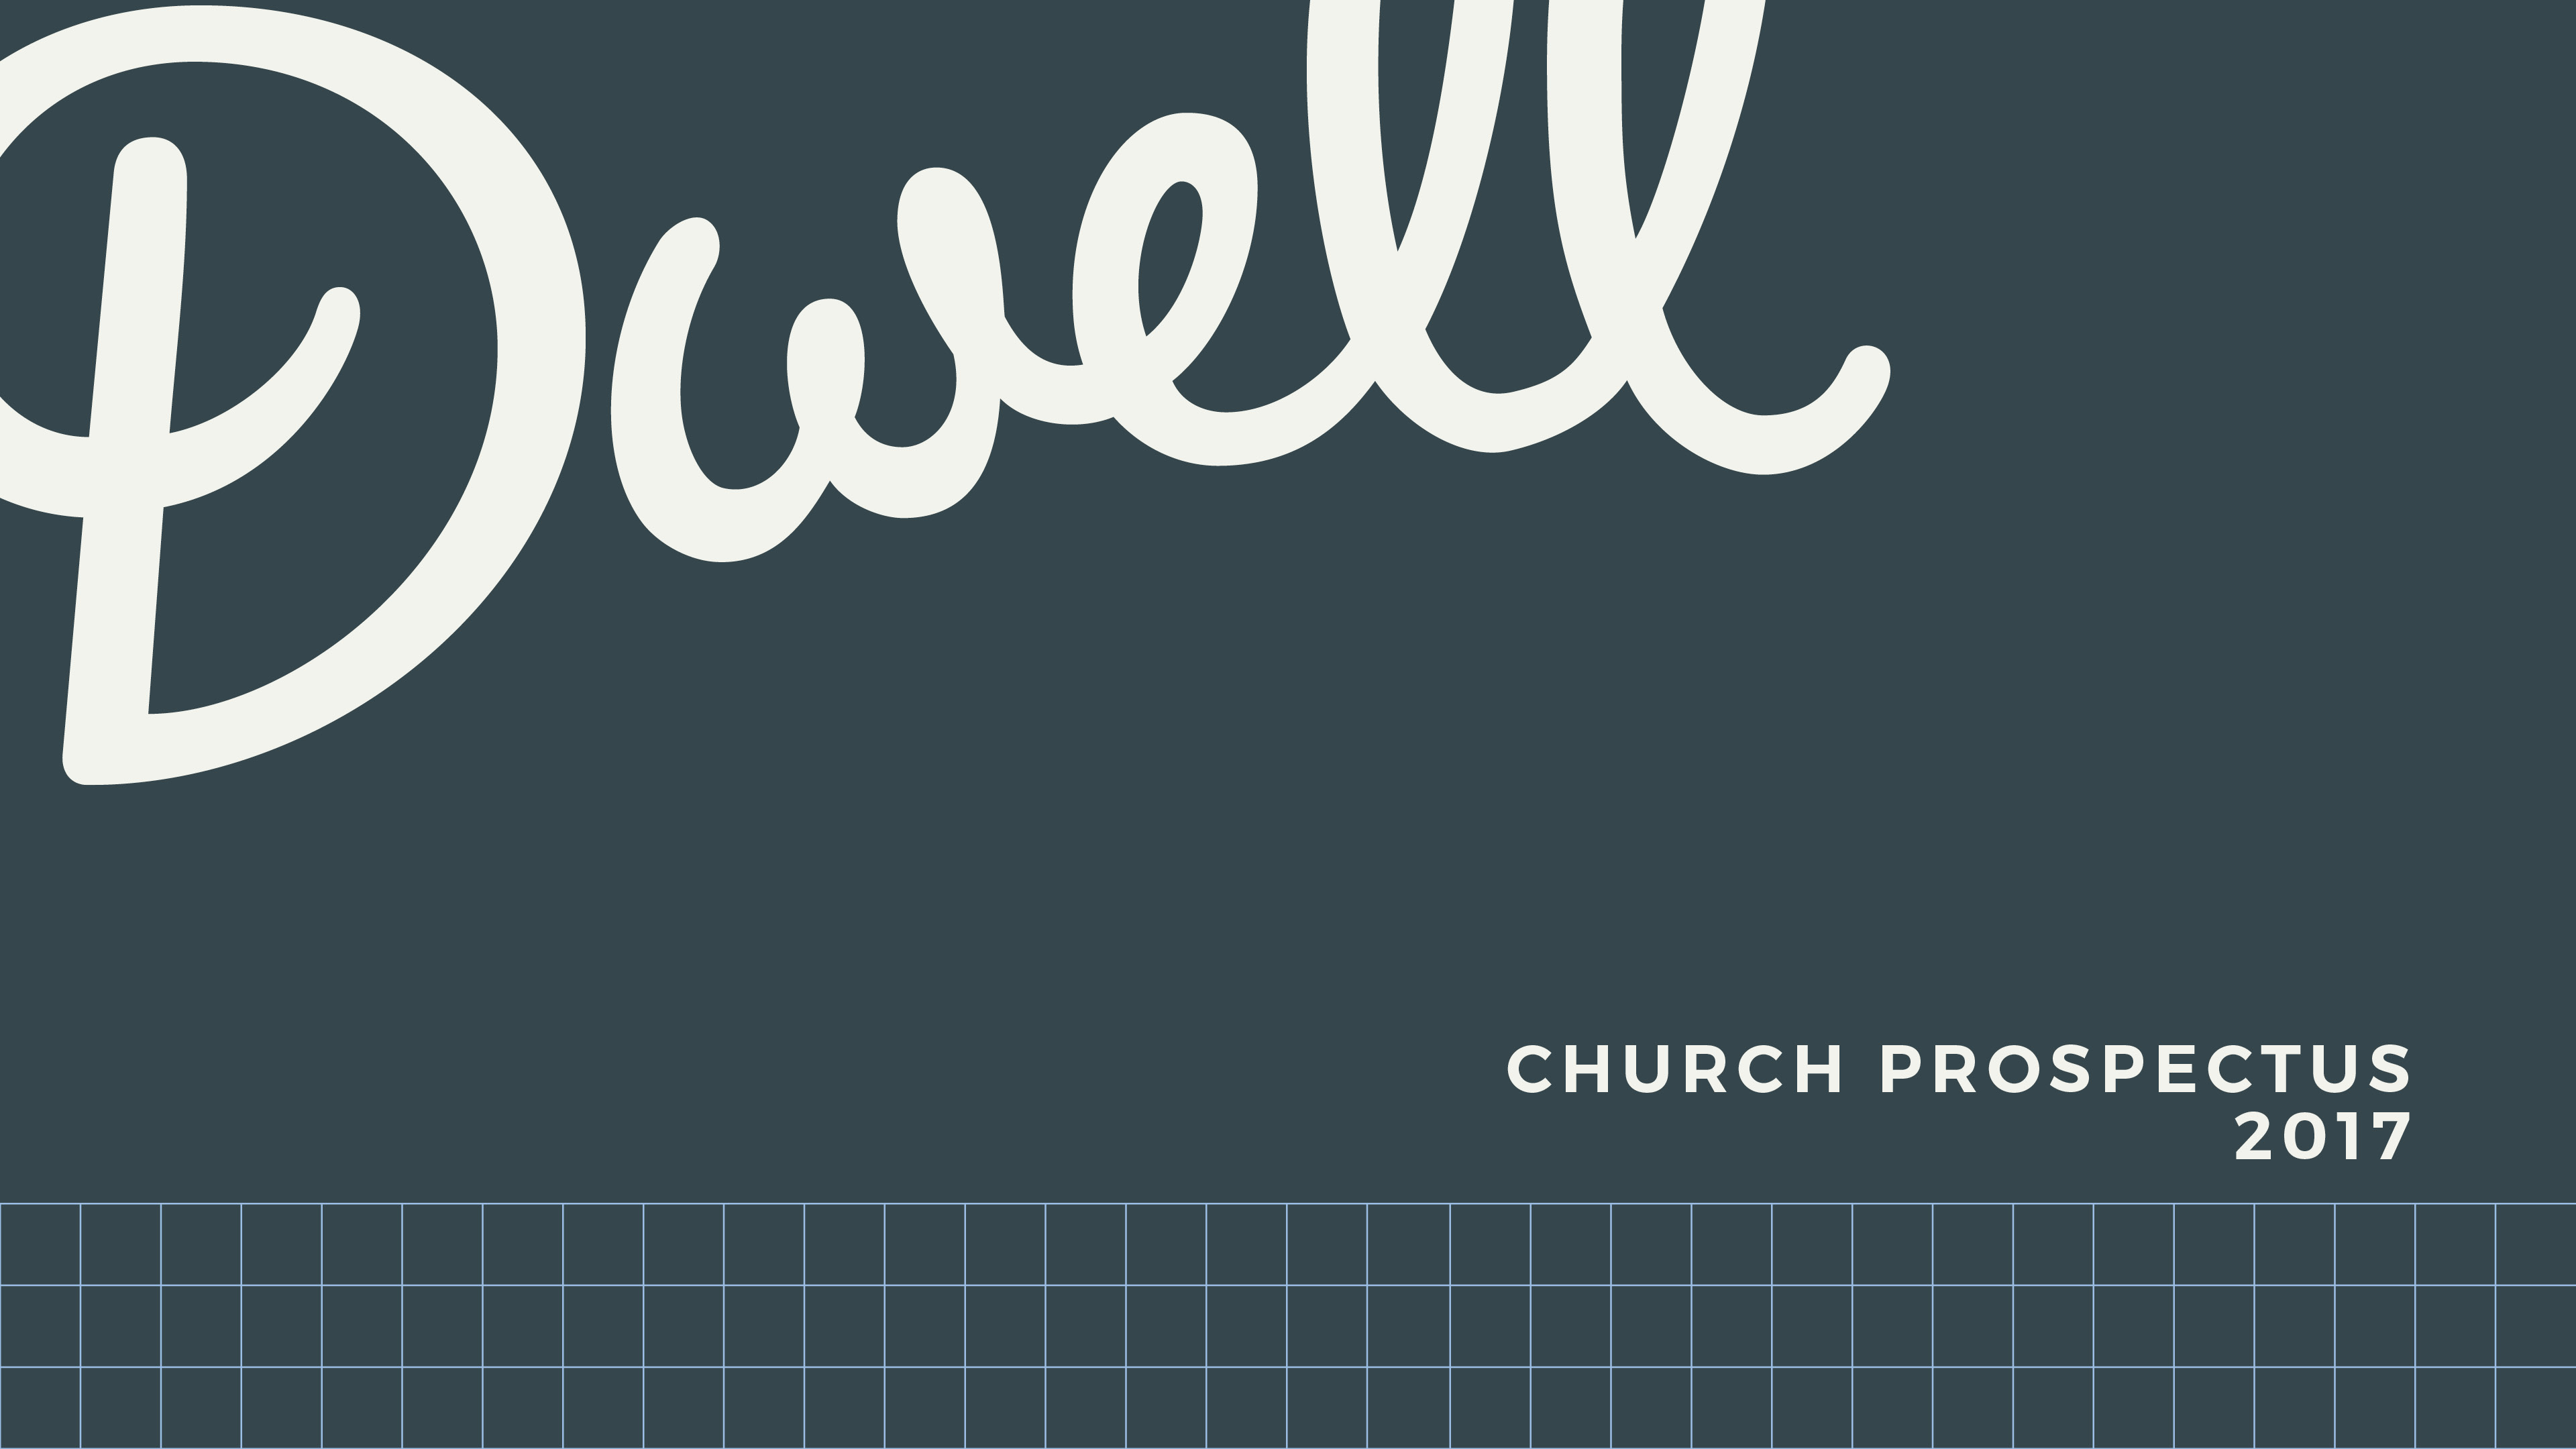 Dwell Church Prospectus